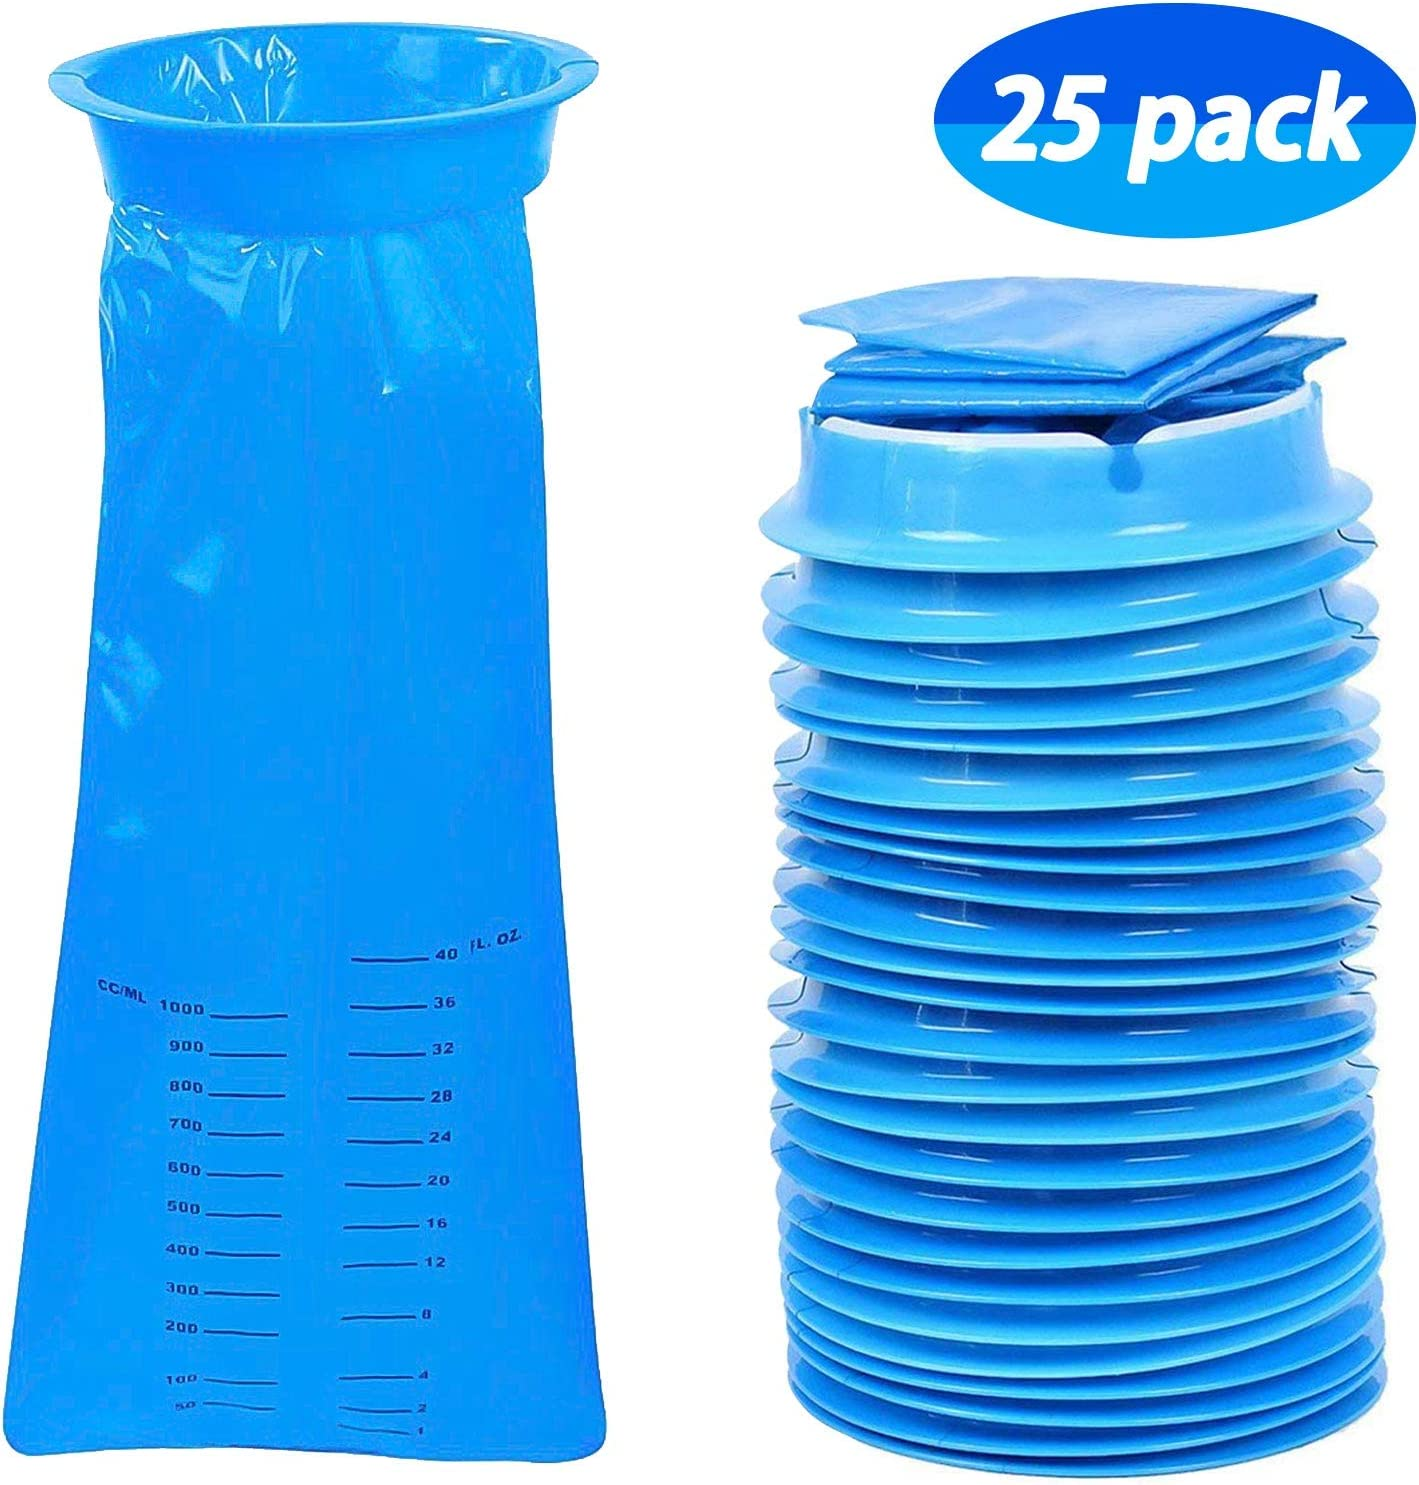 Vomit Bags, Disposable Emesis Bags, Motion Sickness Nausea Bags Sealable  for Waste Disposal, Sea, Car, Travel Hospital Pregnancy Kids Urine Adults  Portable Medical Grade, 1000ml, 25 Pack Blue: Amazon.co.uk: Health &  Personal